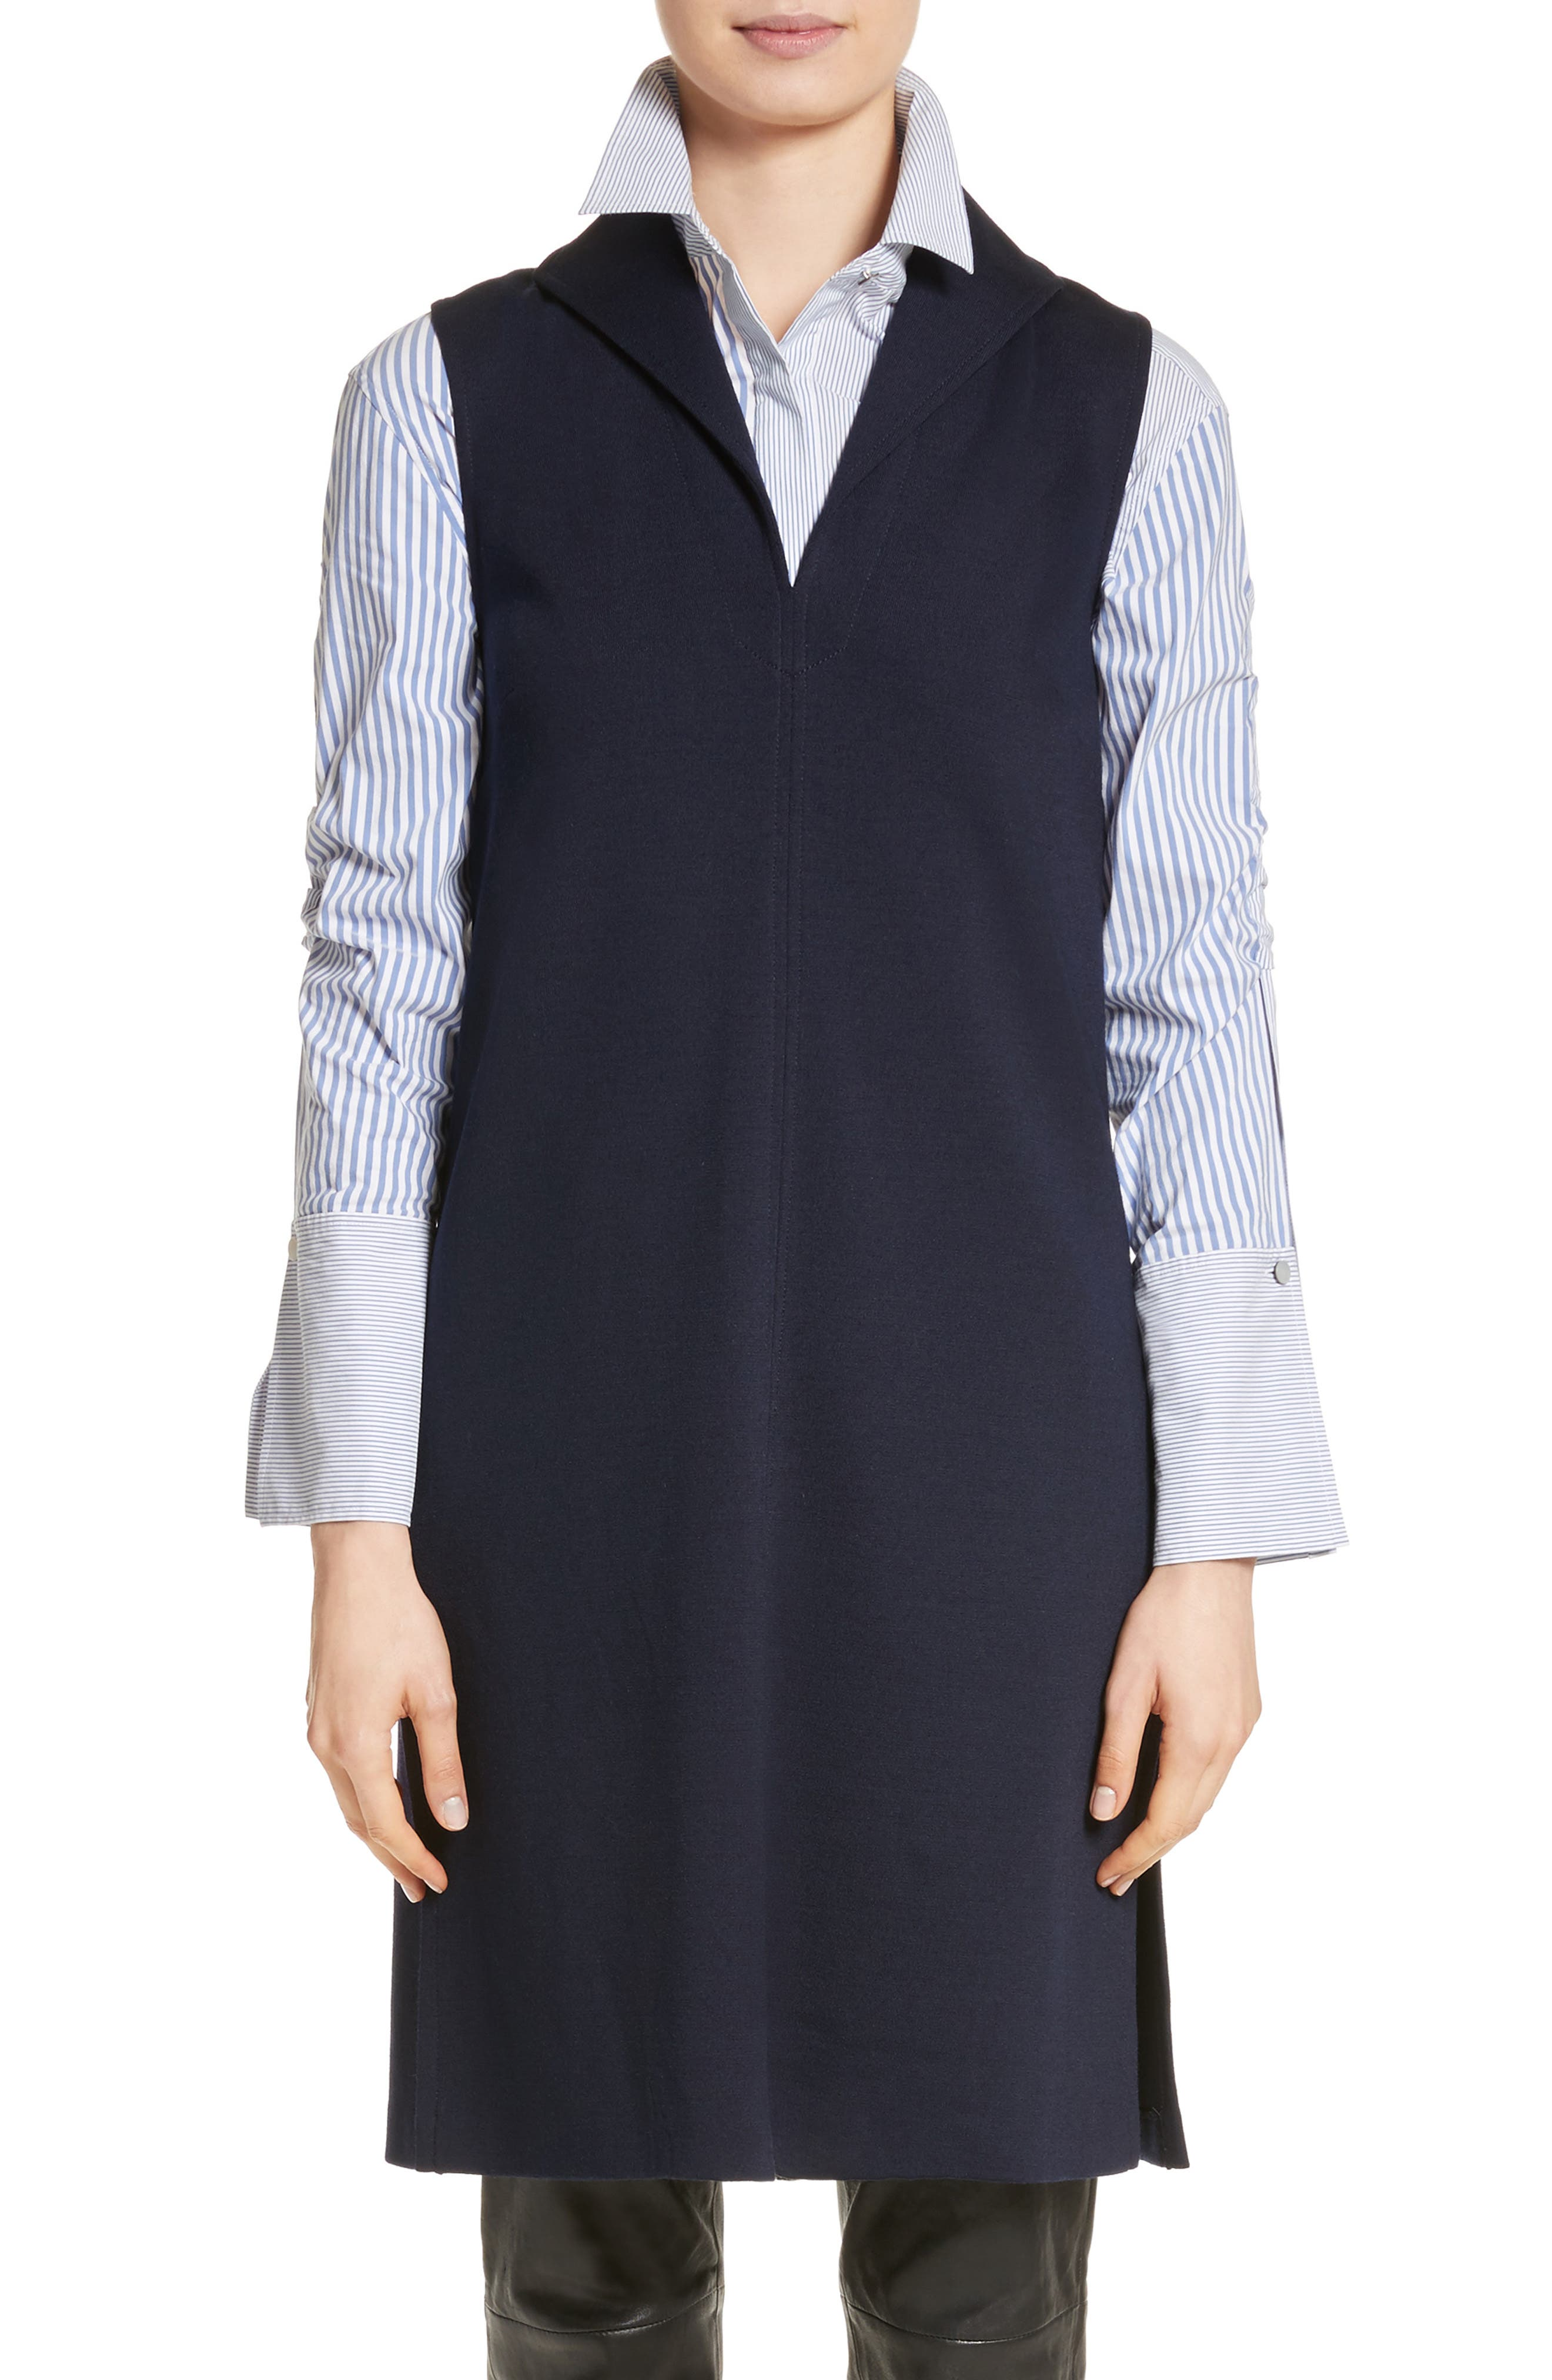 St John Collection Milano Knit Collared Tunic